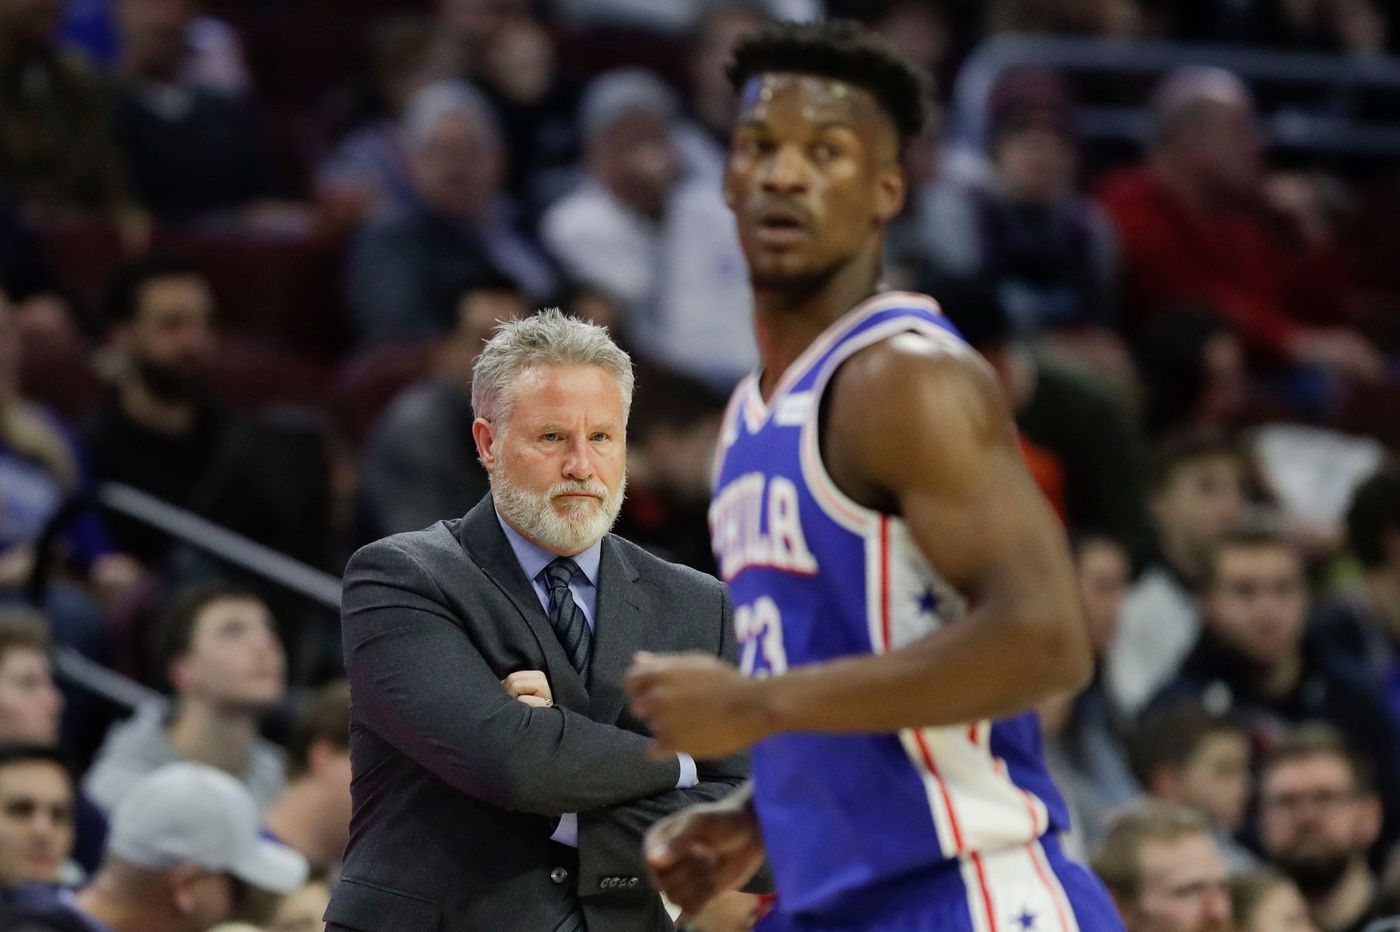 Brett Brown is on the hottest seat, the Sixers front office should feel some heat too | David Murphy